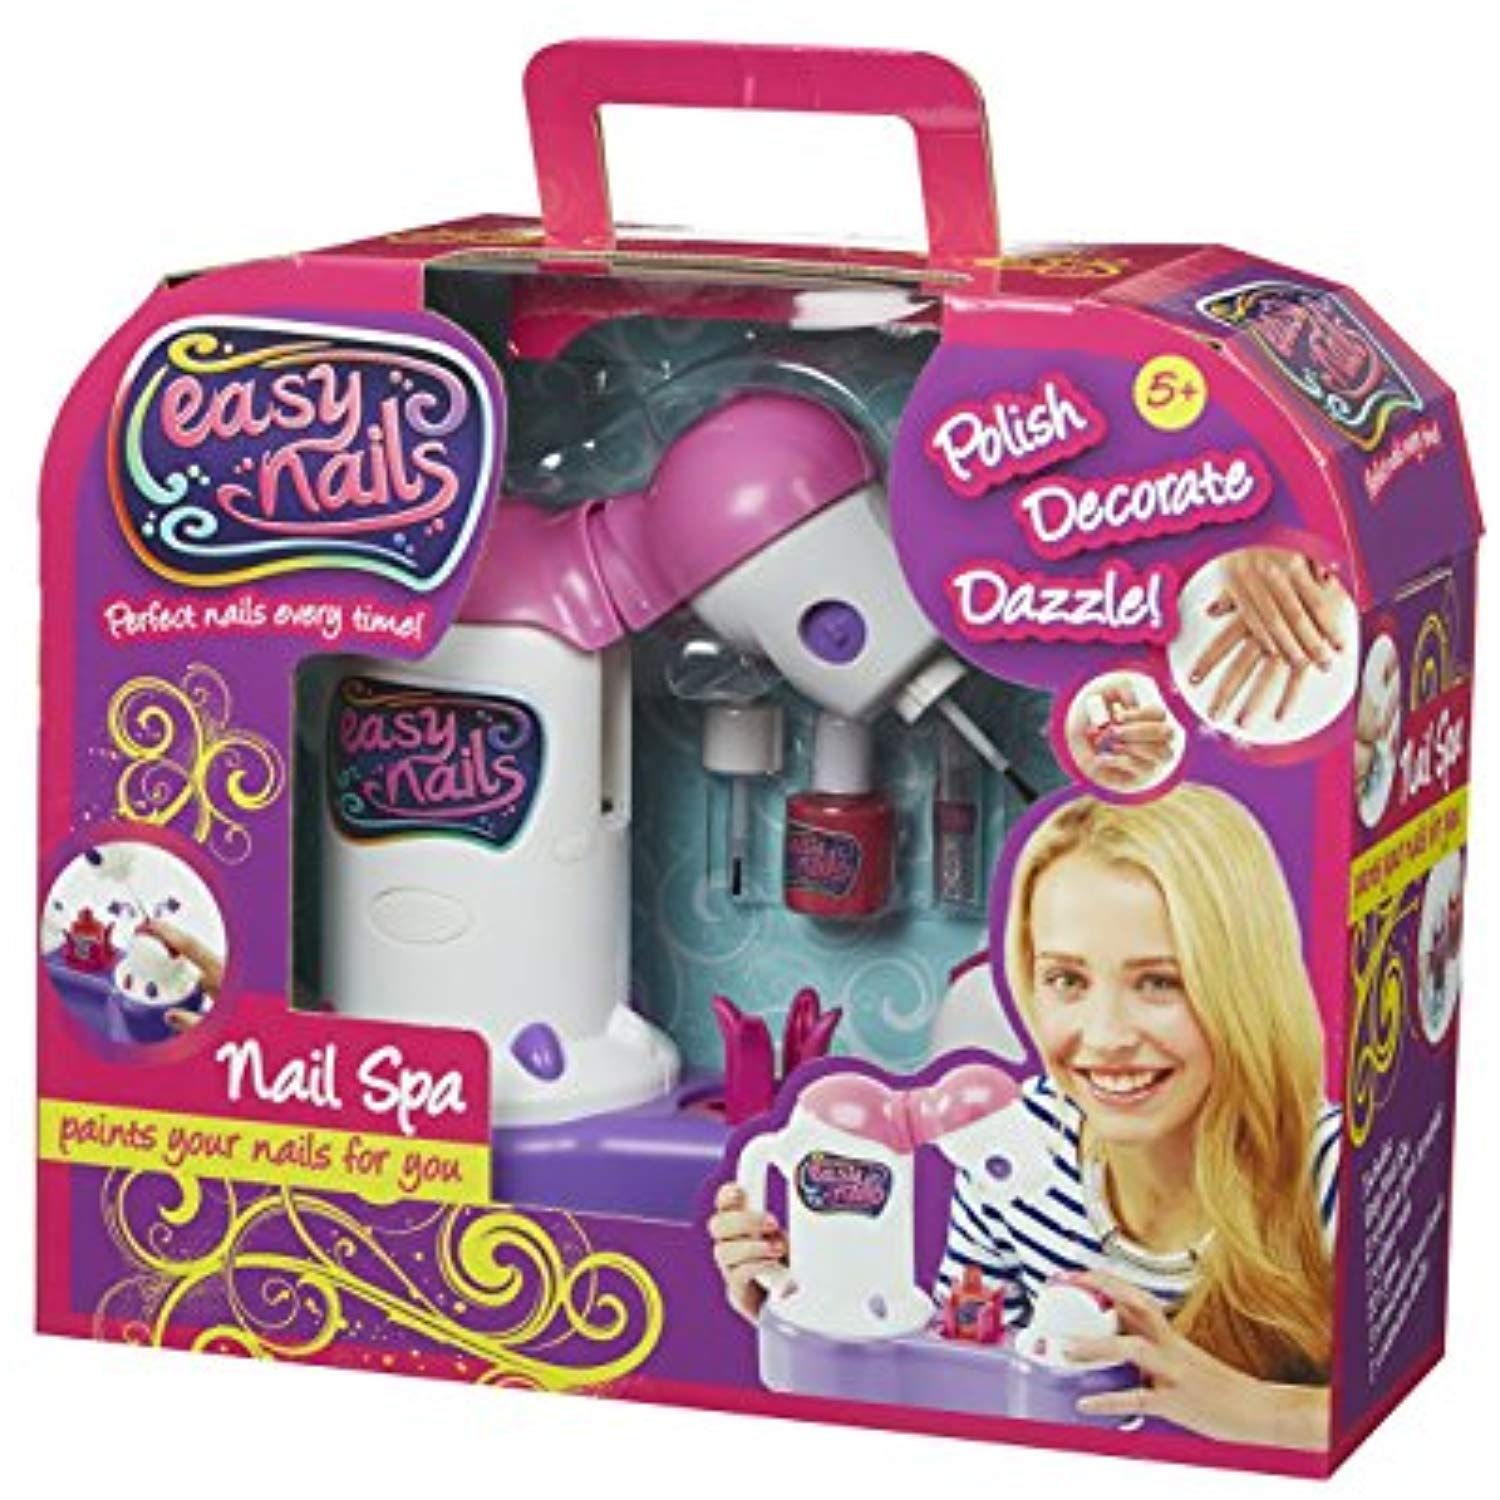 Easy nail spa kit by easy nail want to know more